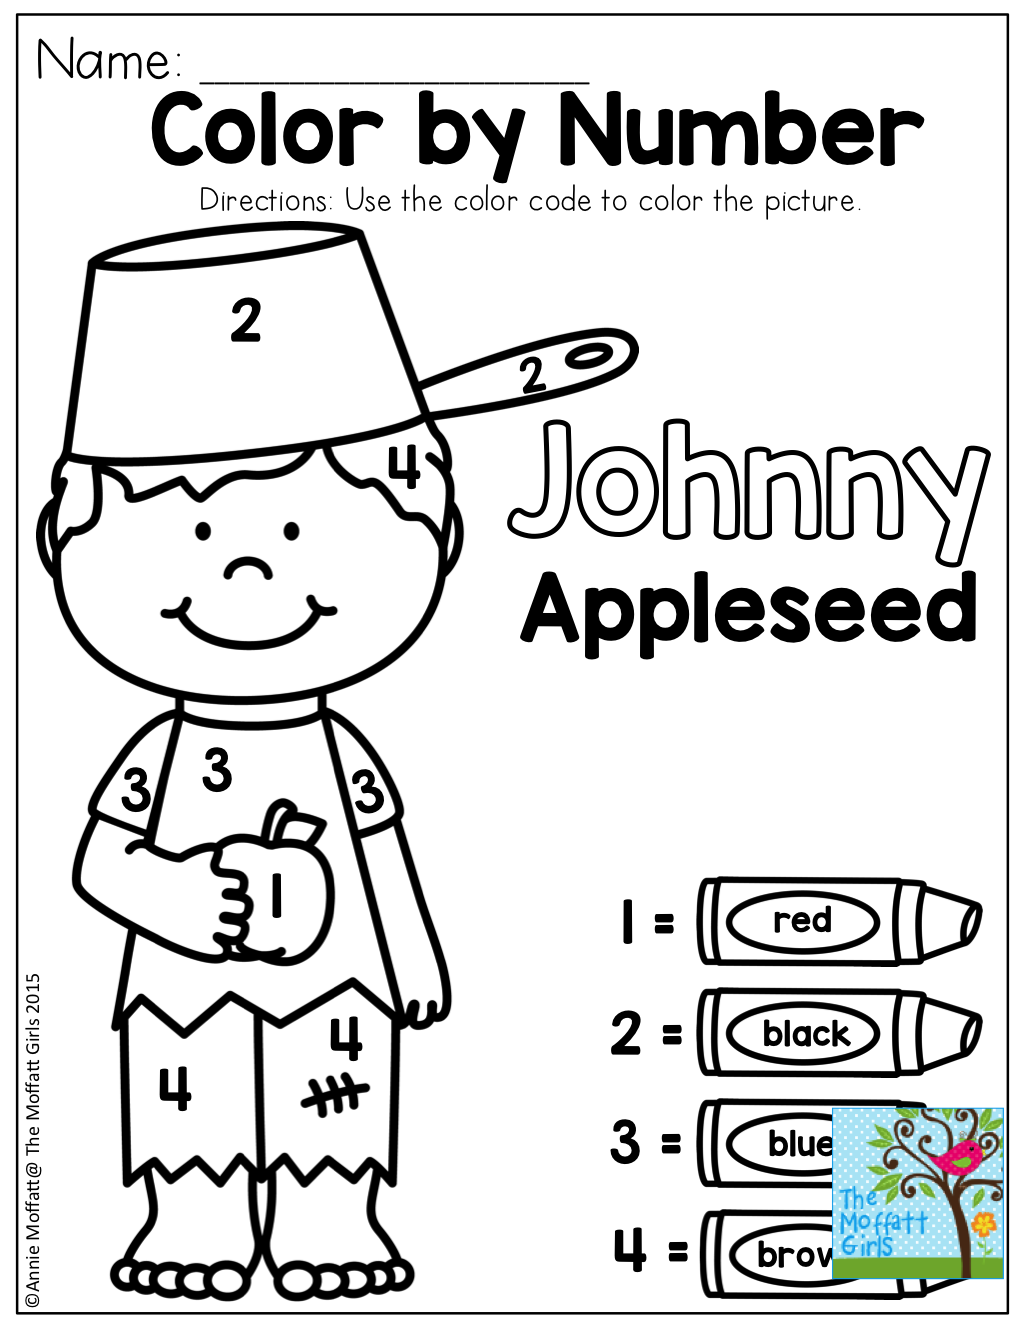 worksheet Johnny Appleseed Worksheets color by number with johnny appleseed tons of fun printables to practice basic skills